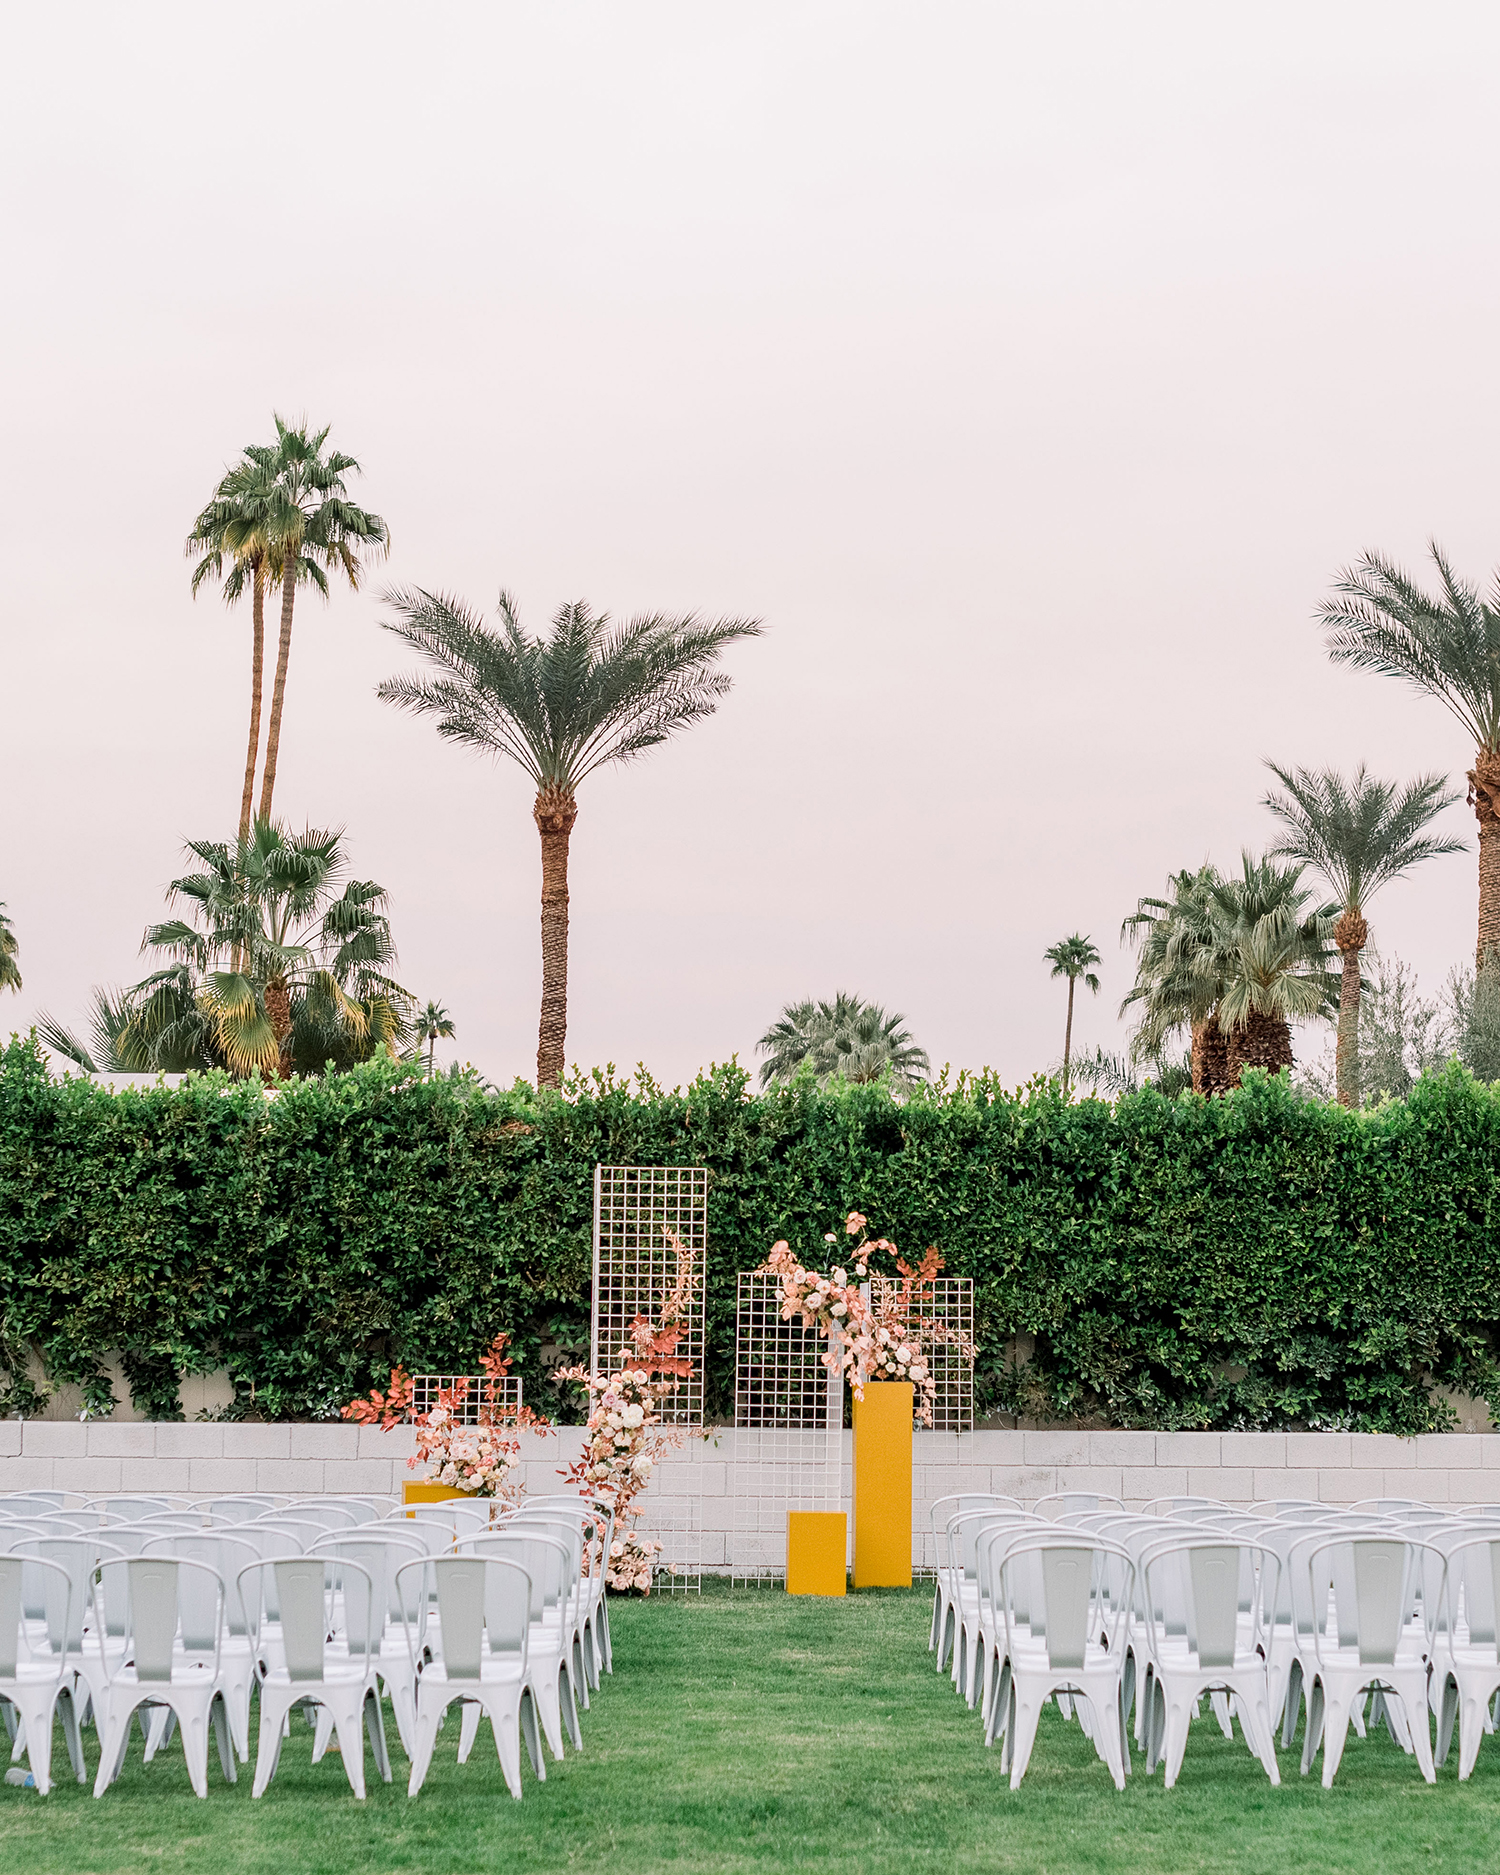 hanna will wedding outdoor ceremony with palm trees